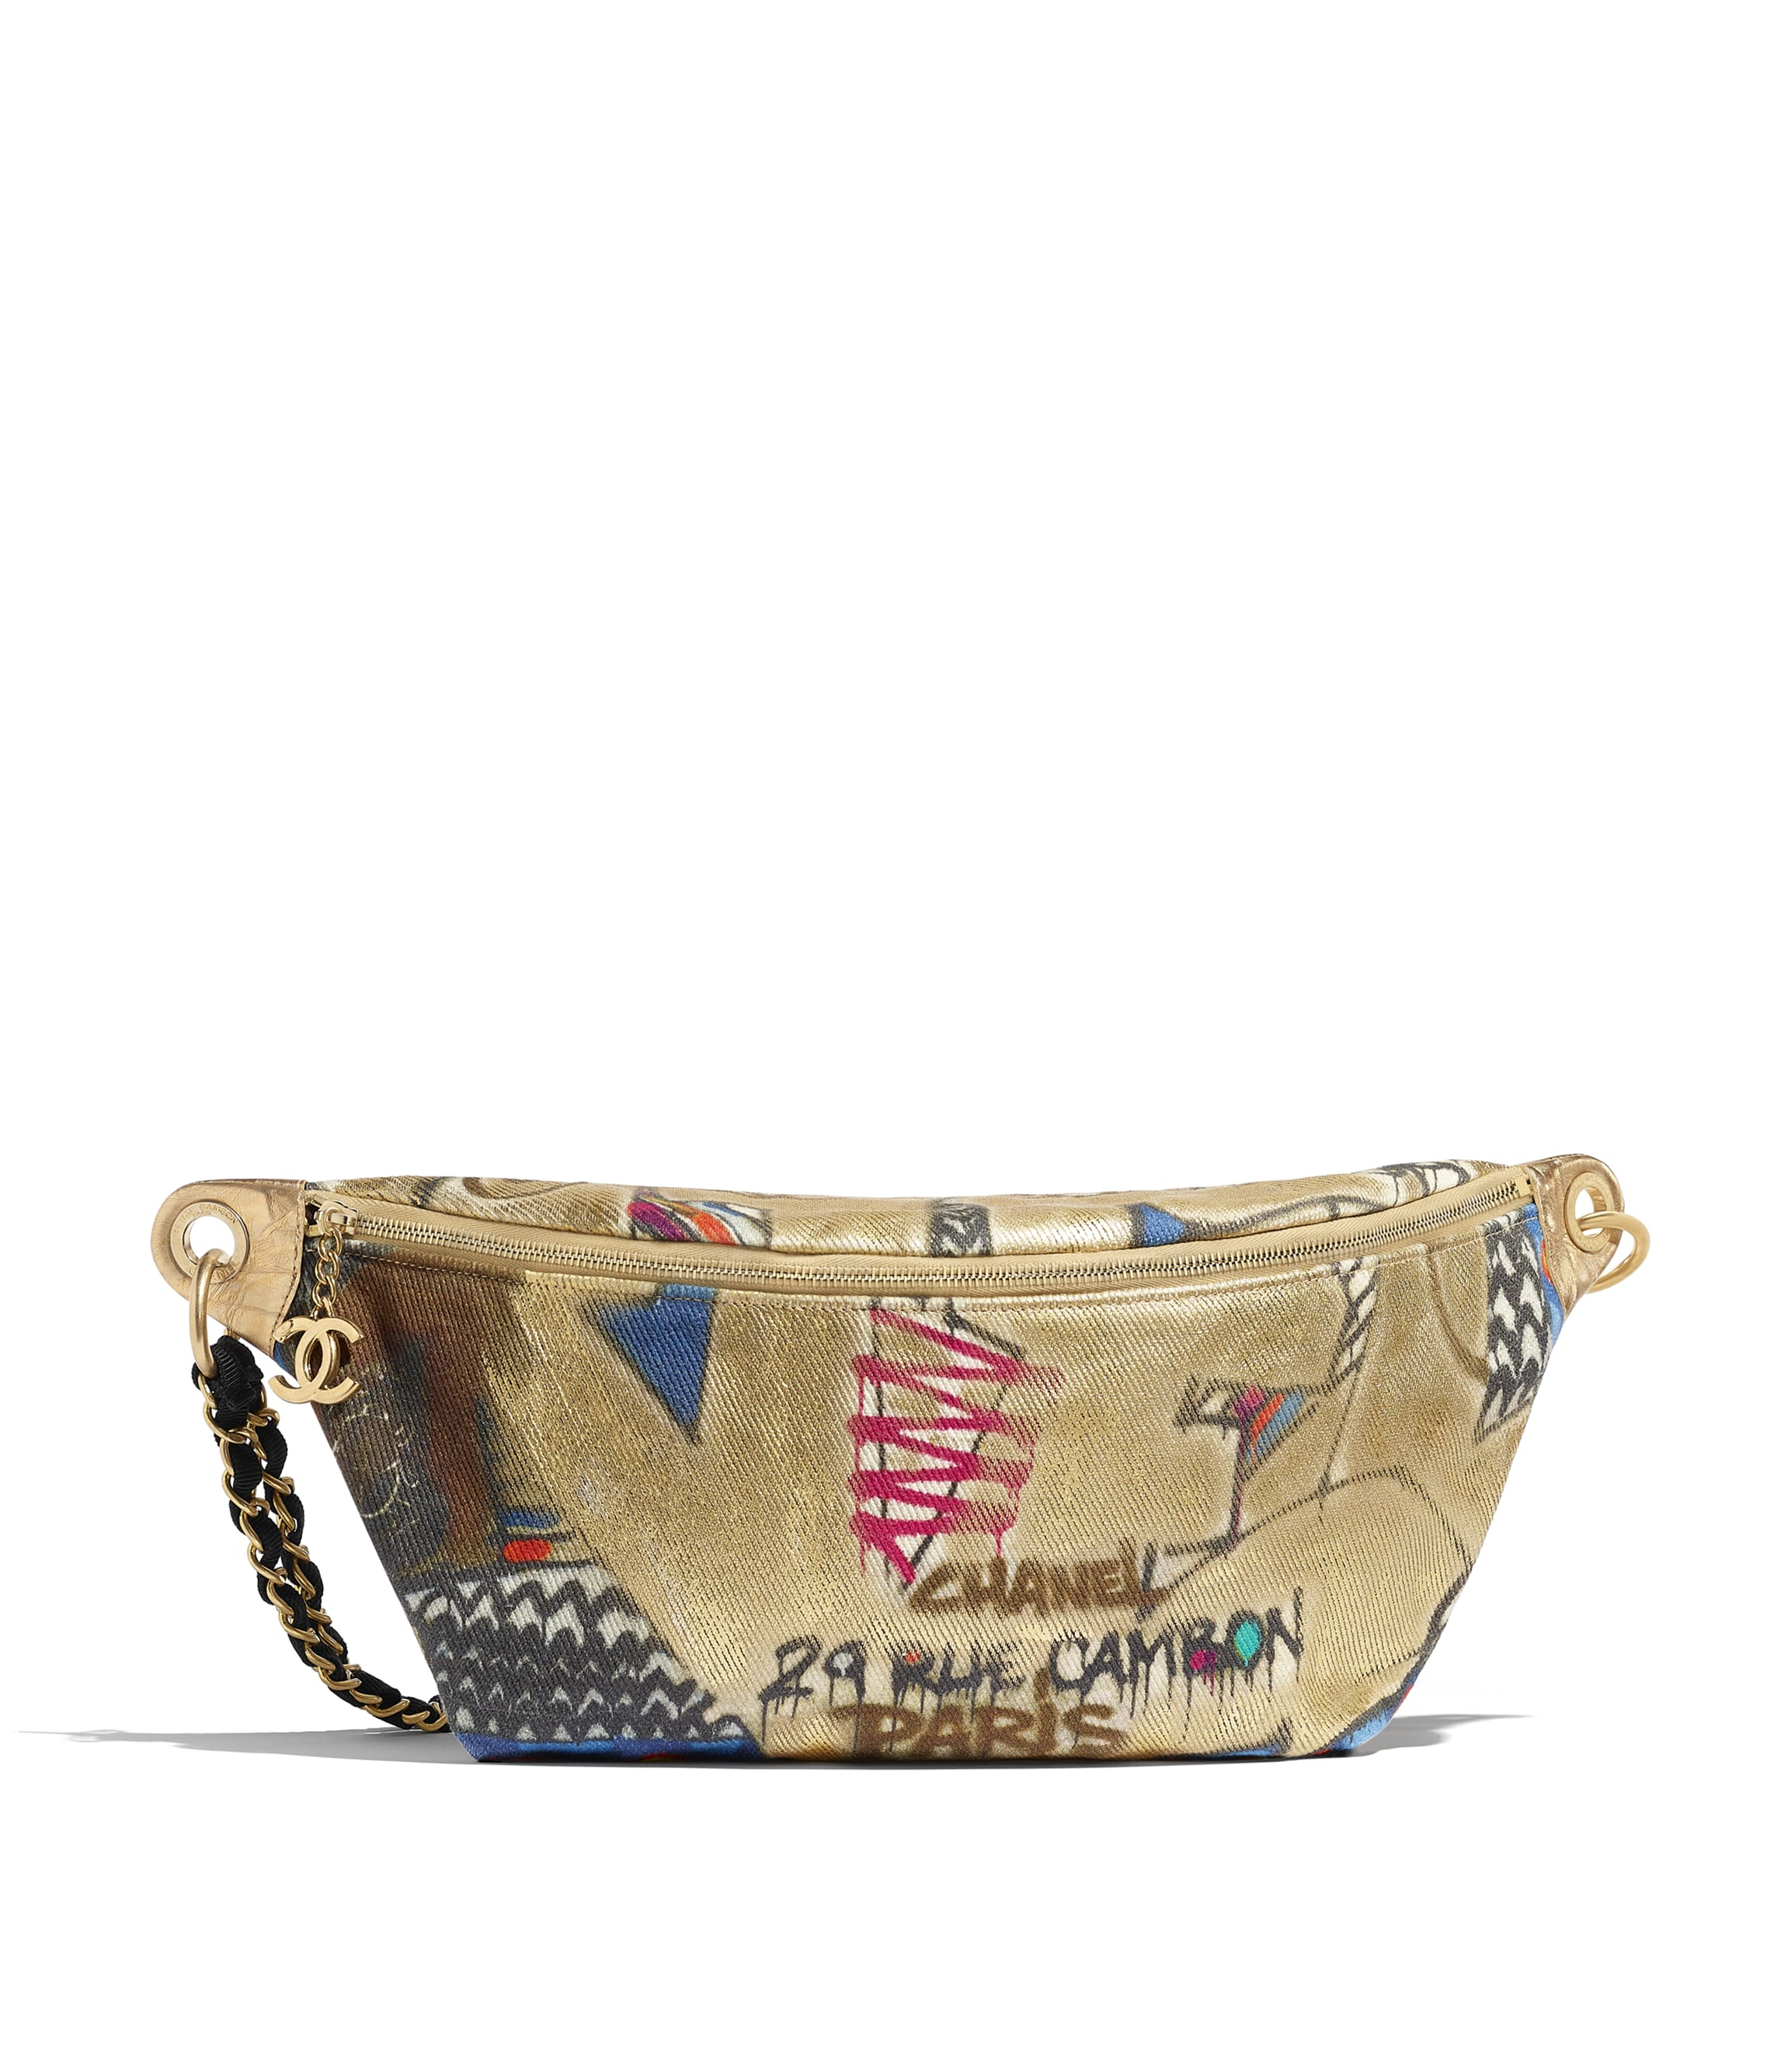 fa5c5cac69bdd Waist Bag, calfskin, cotton & gold-tone metal, multicolor - CHANEL